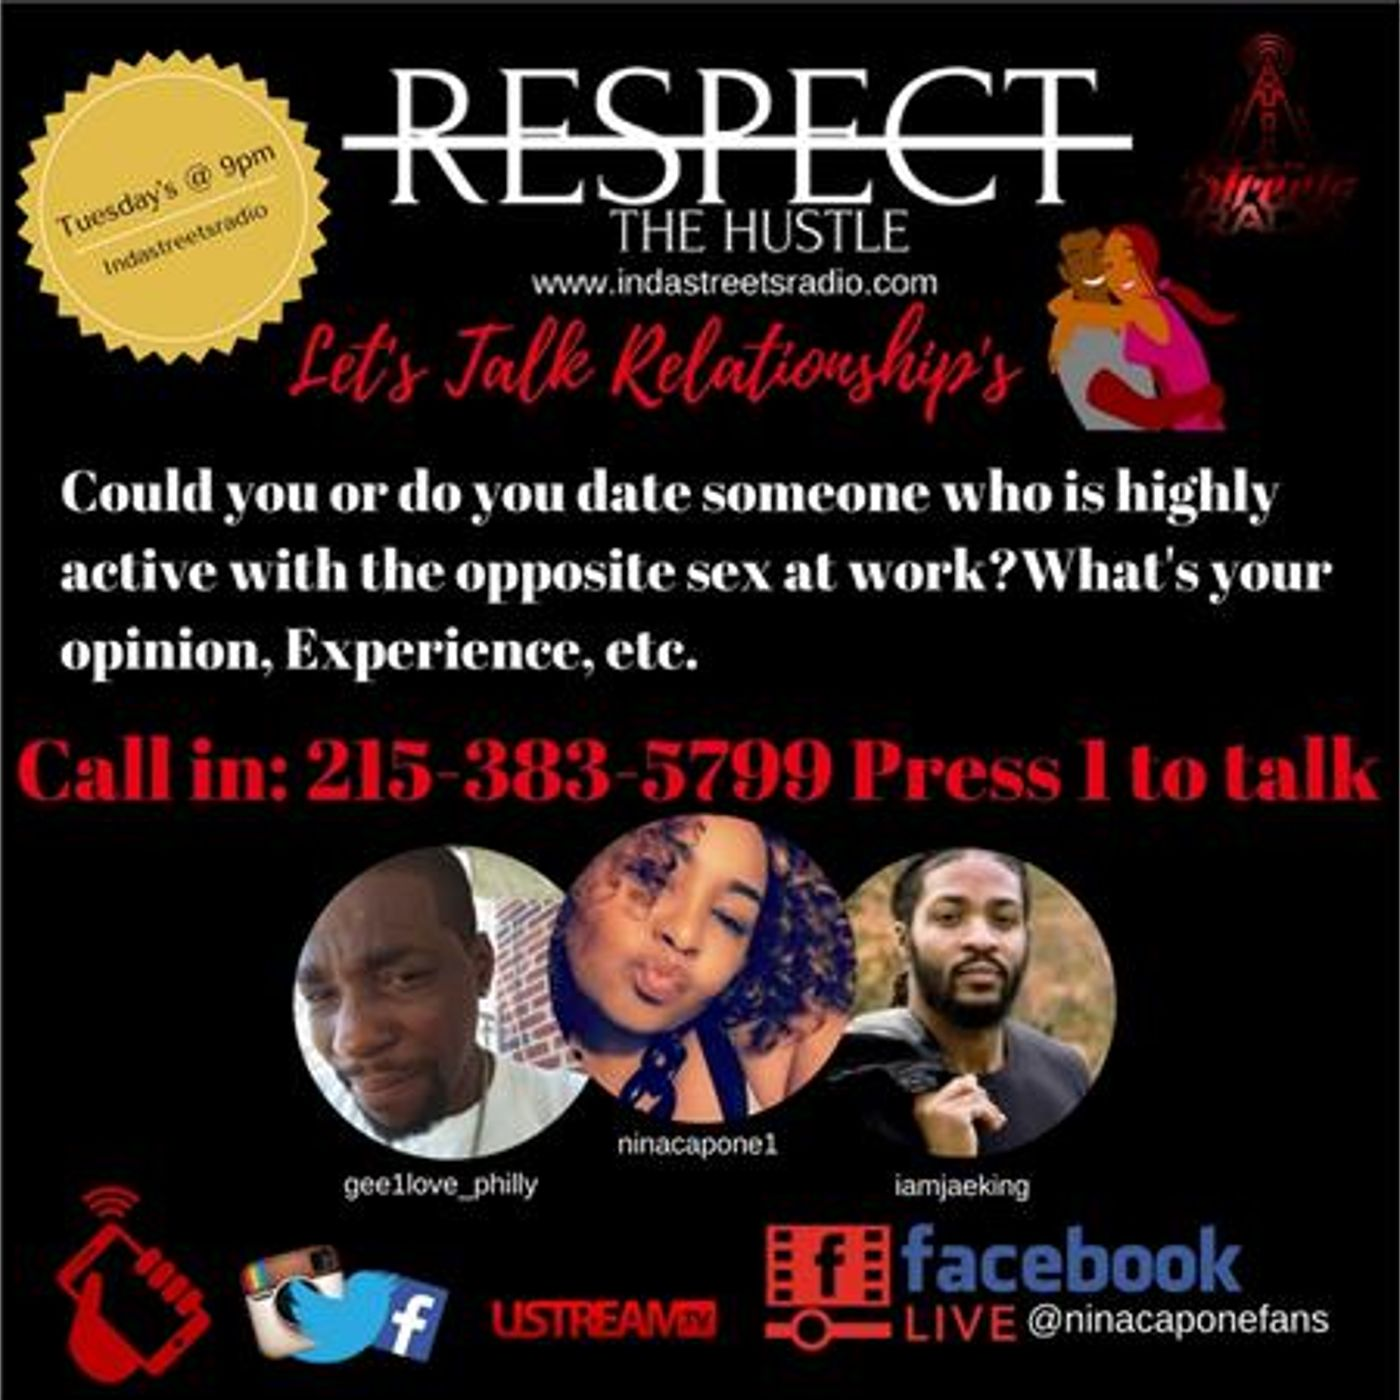 Can you date someone highly interactive with the opposite sex? 215-383-5799